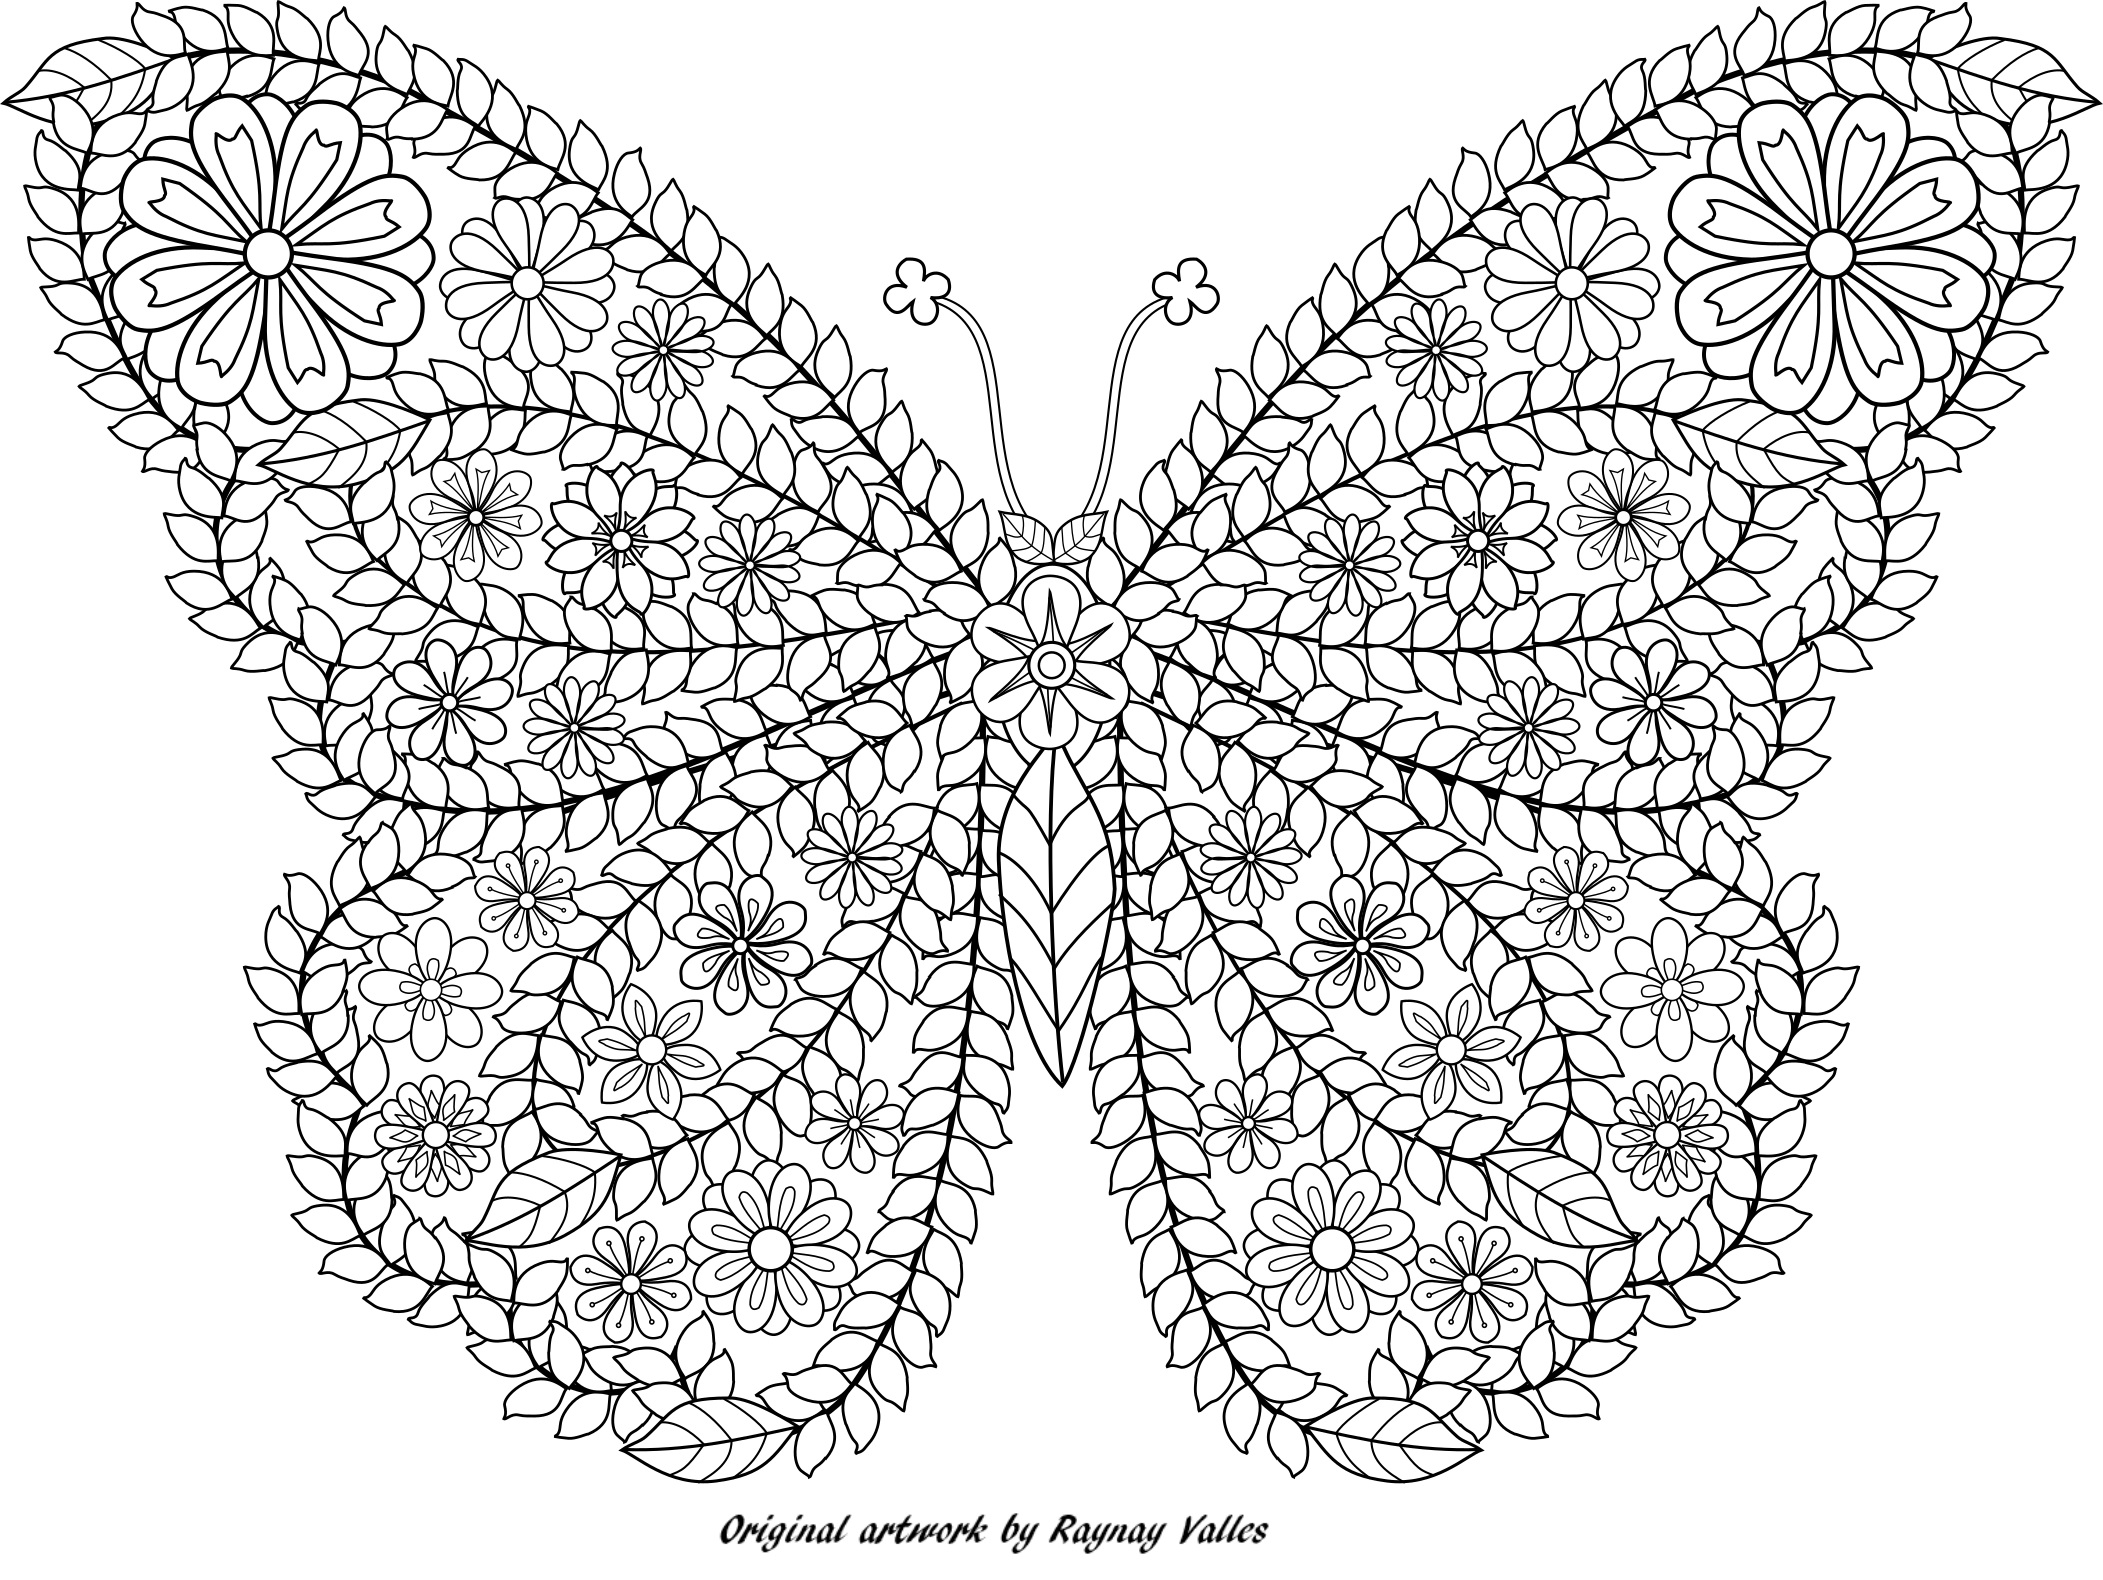 Http I0 Wp Com Raynayvalles Com Wp Content Uploads 2015 08 Flower Butterfly By Rv Png Butterfly Coloring Page Coloring Books Mandala Coloring Pages [ 1580 x 2103 Pixel ]